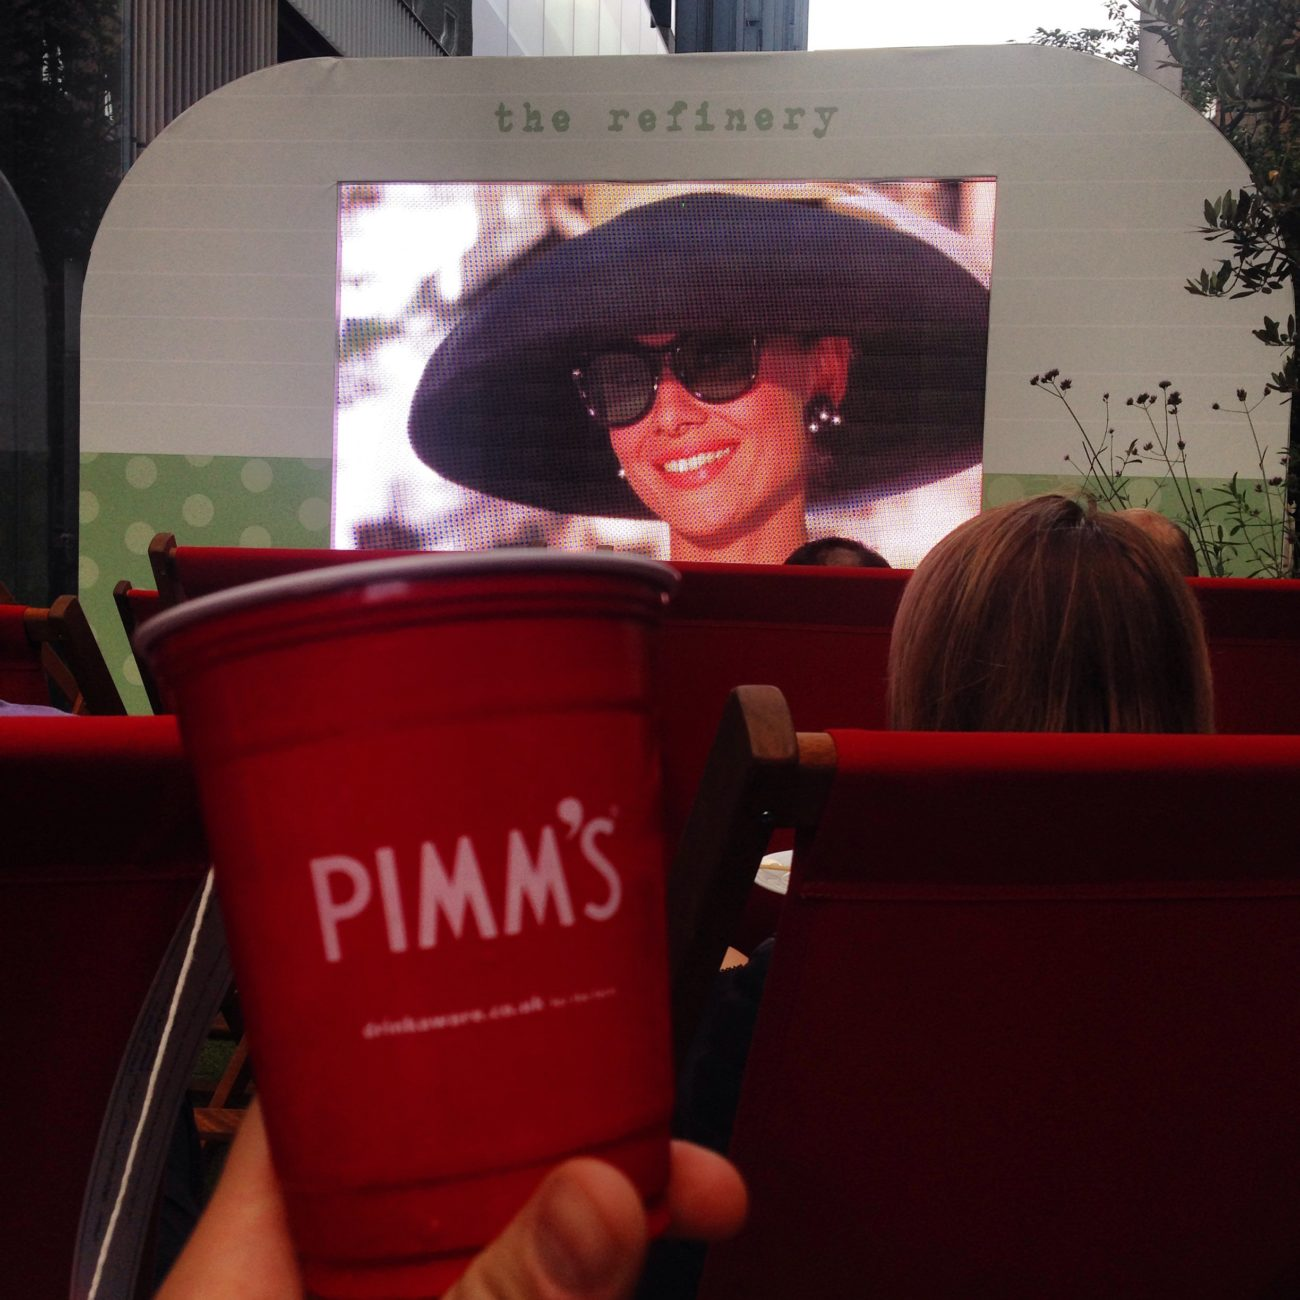 Pimms on the Bankside at The Refinery Bar, London